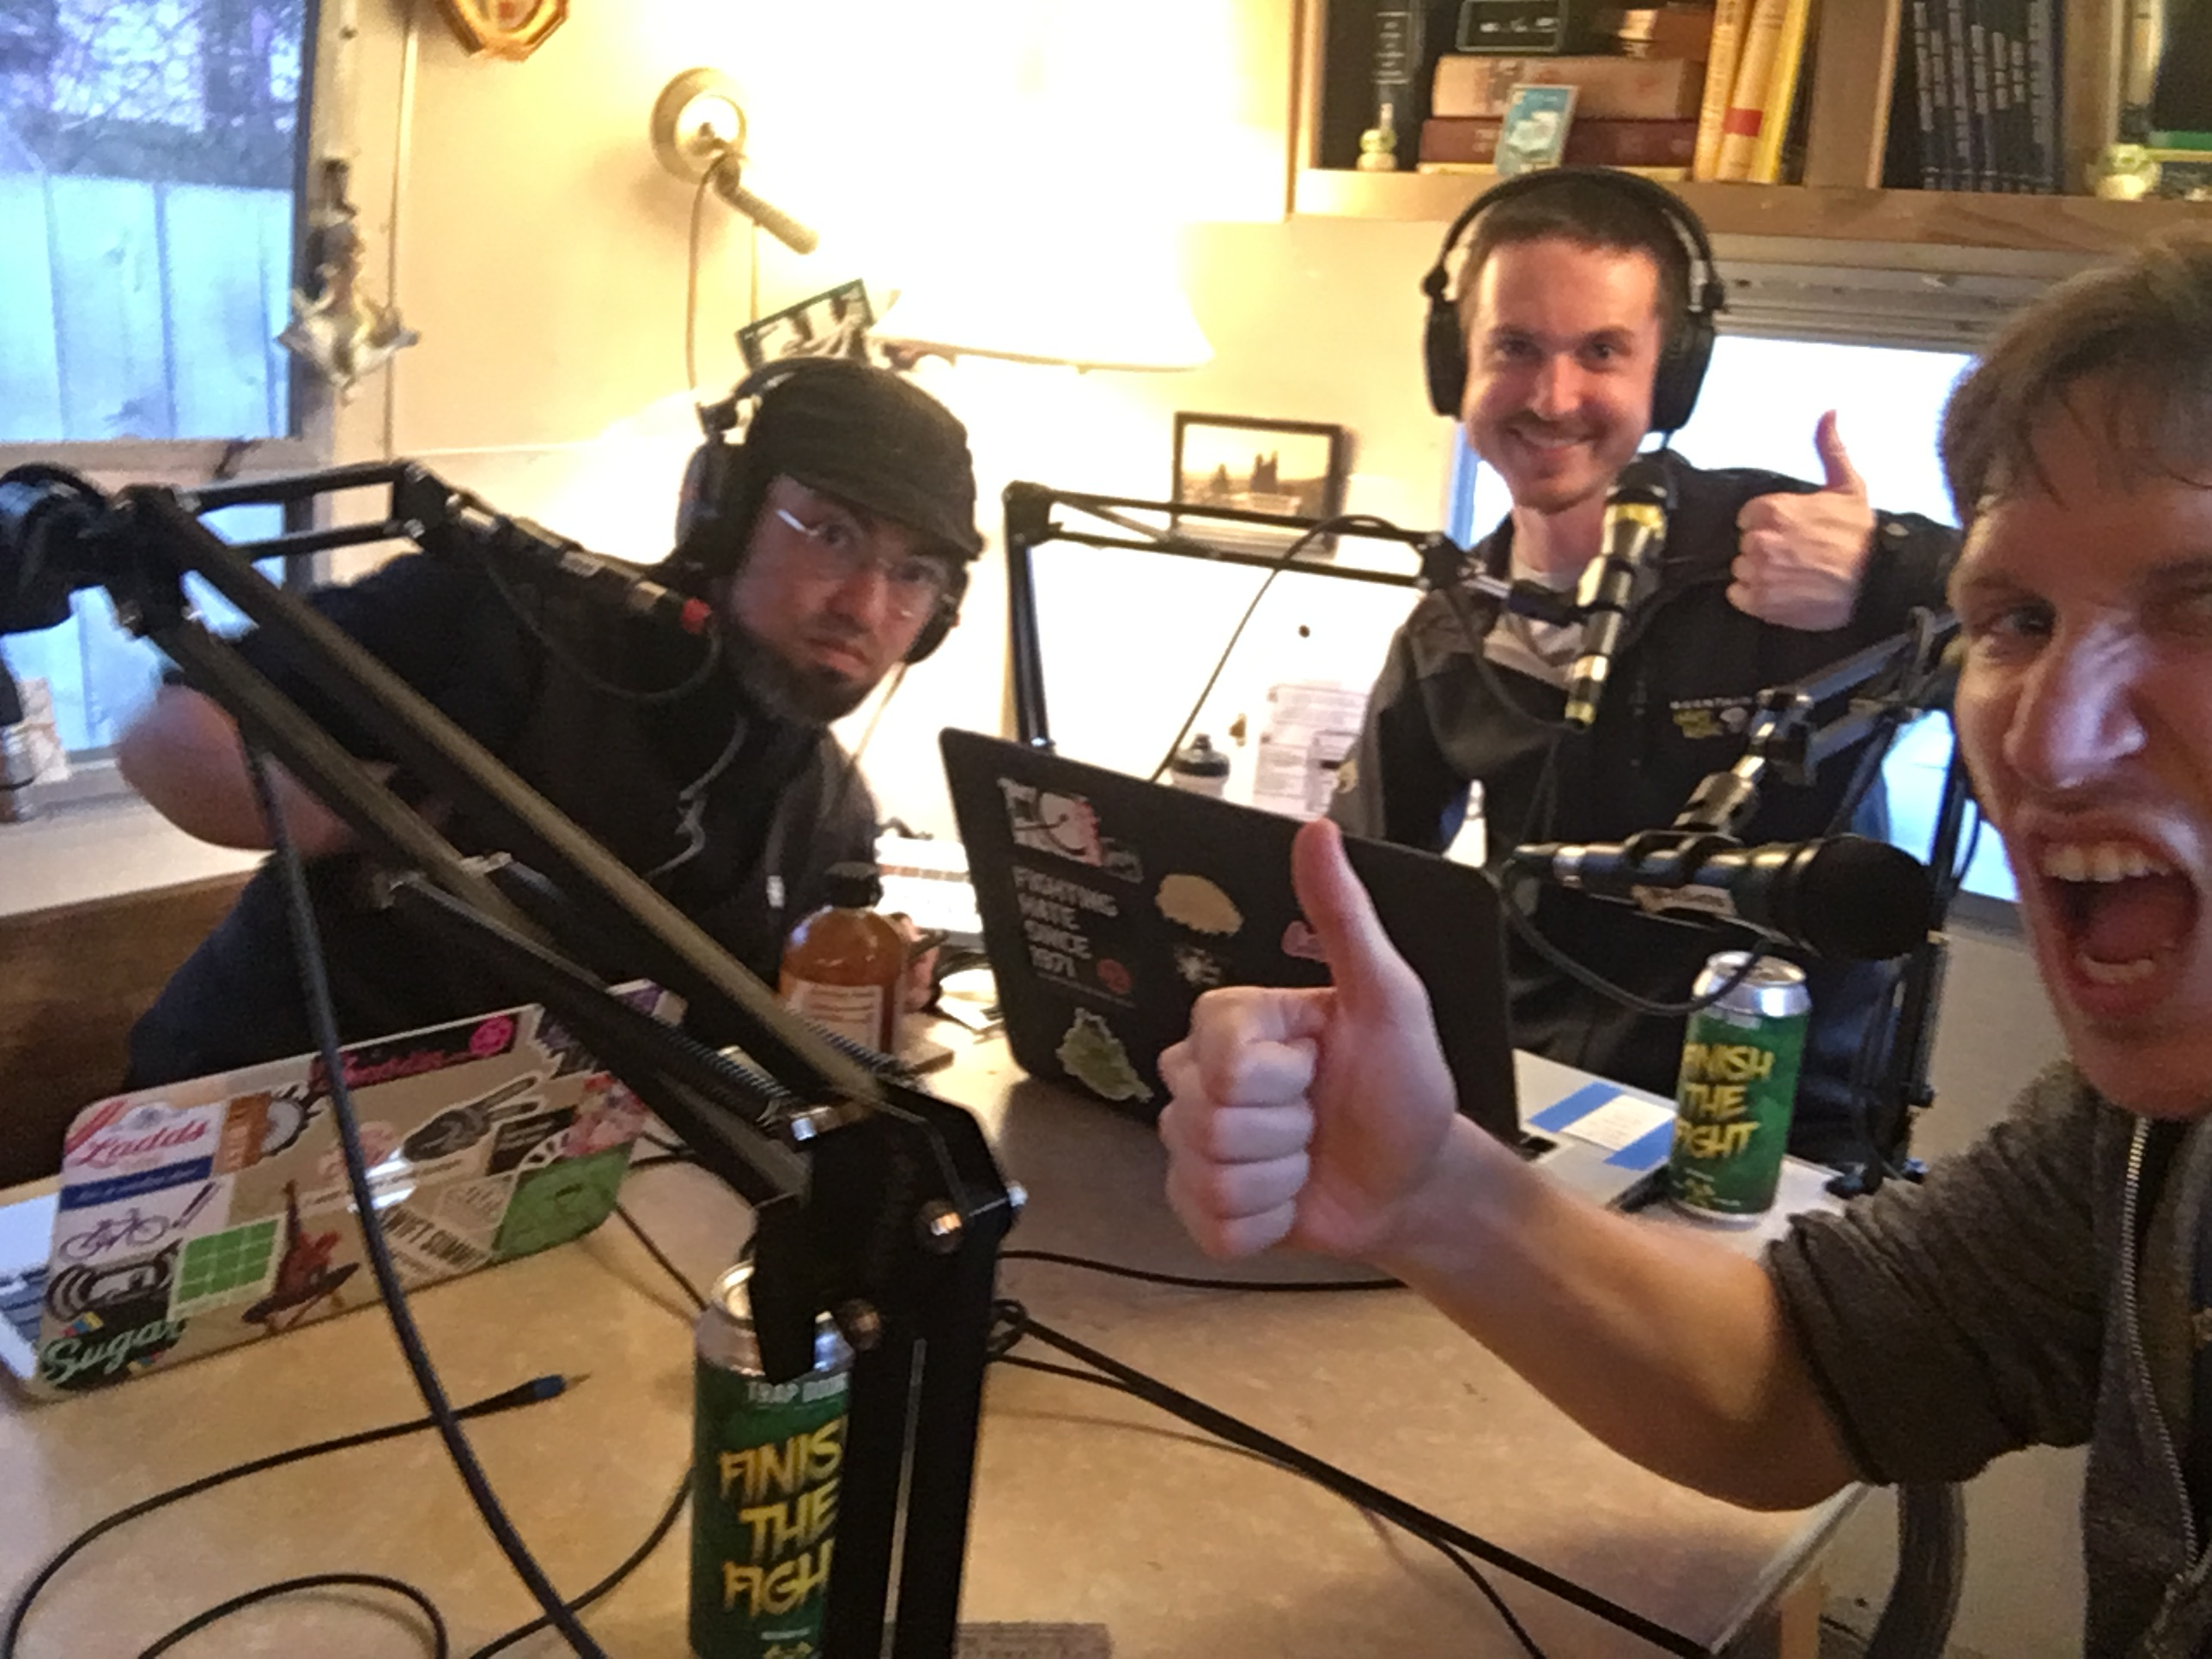 Photo shows a bunch of dudes giving thumbs up while recording the Sprocket Podcast